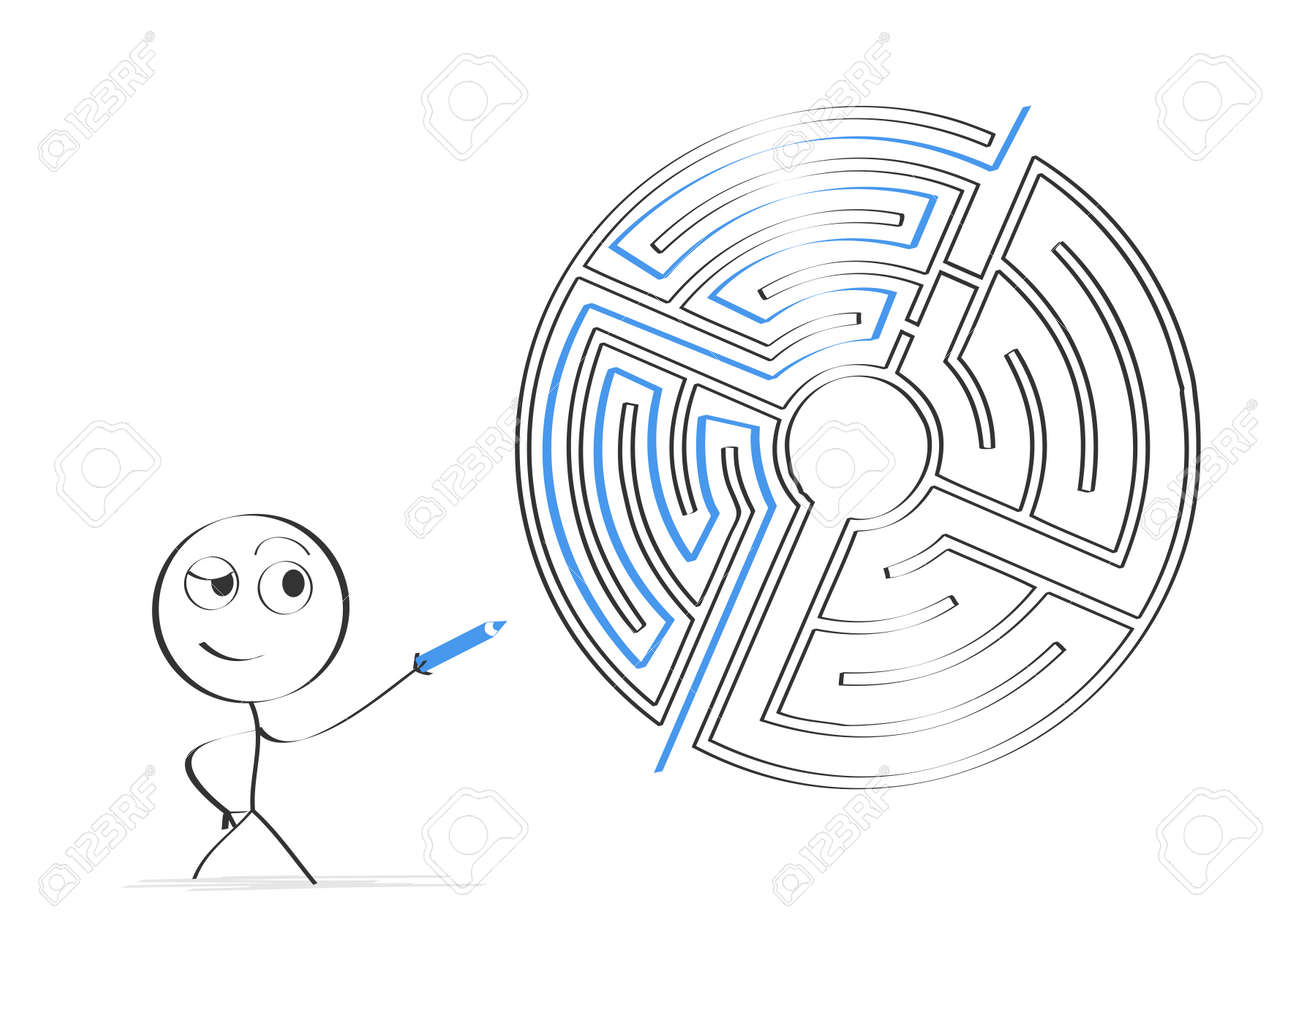 stick figure finding a way through labyrinth royalty free cliparts